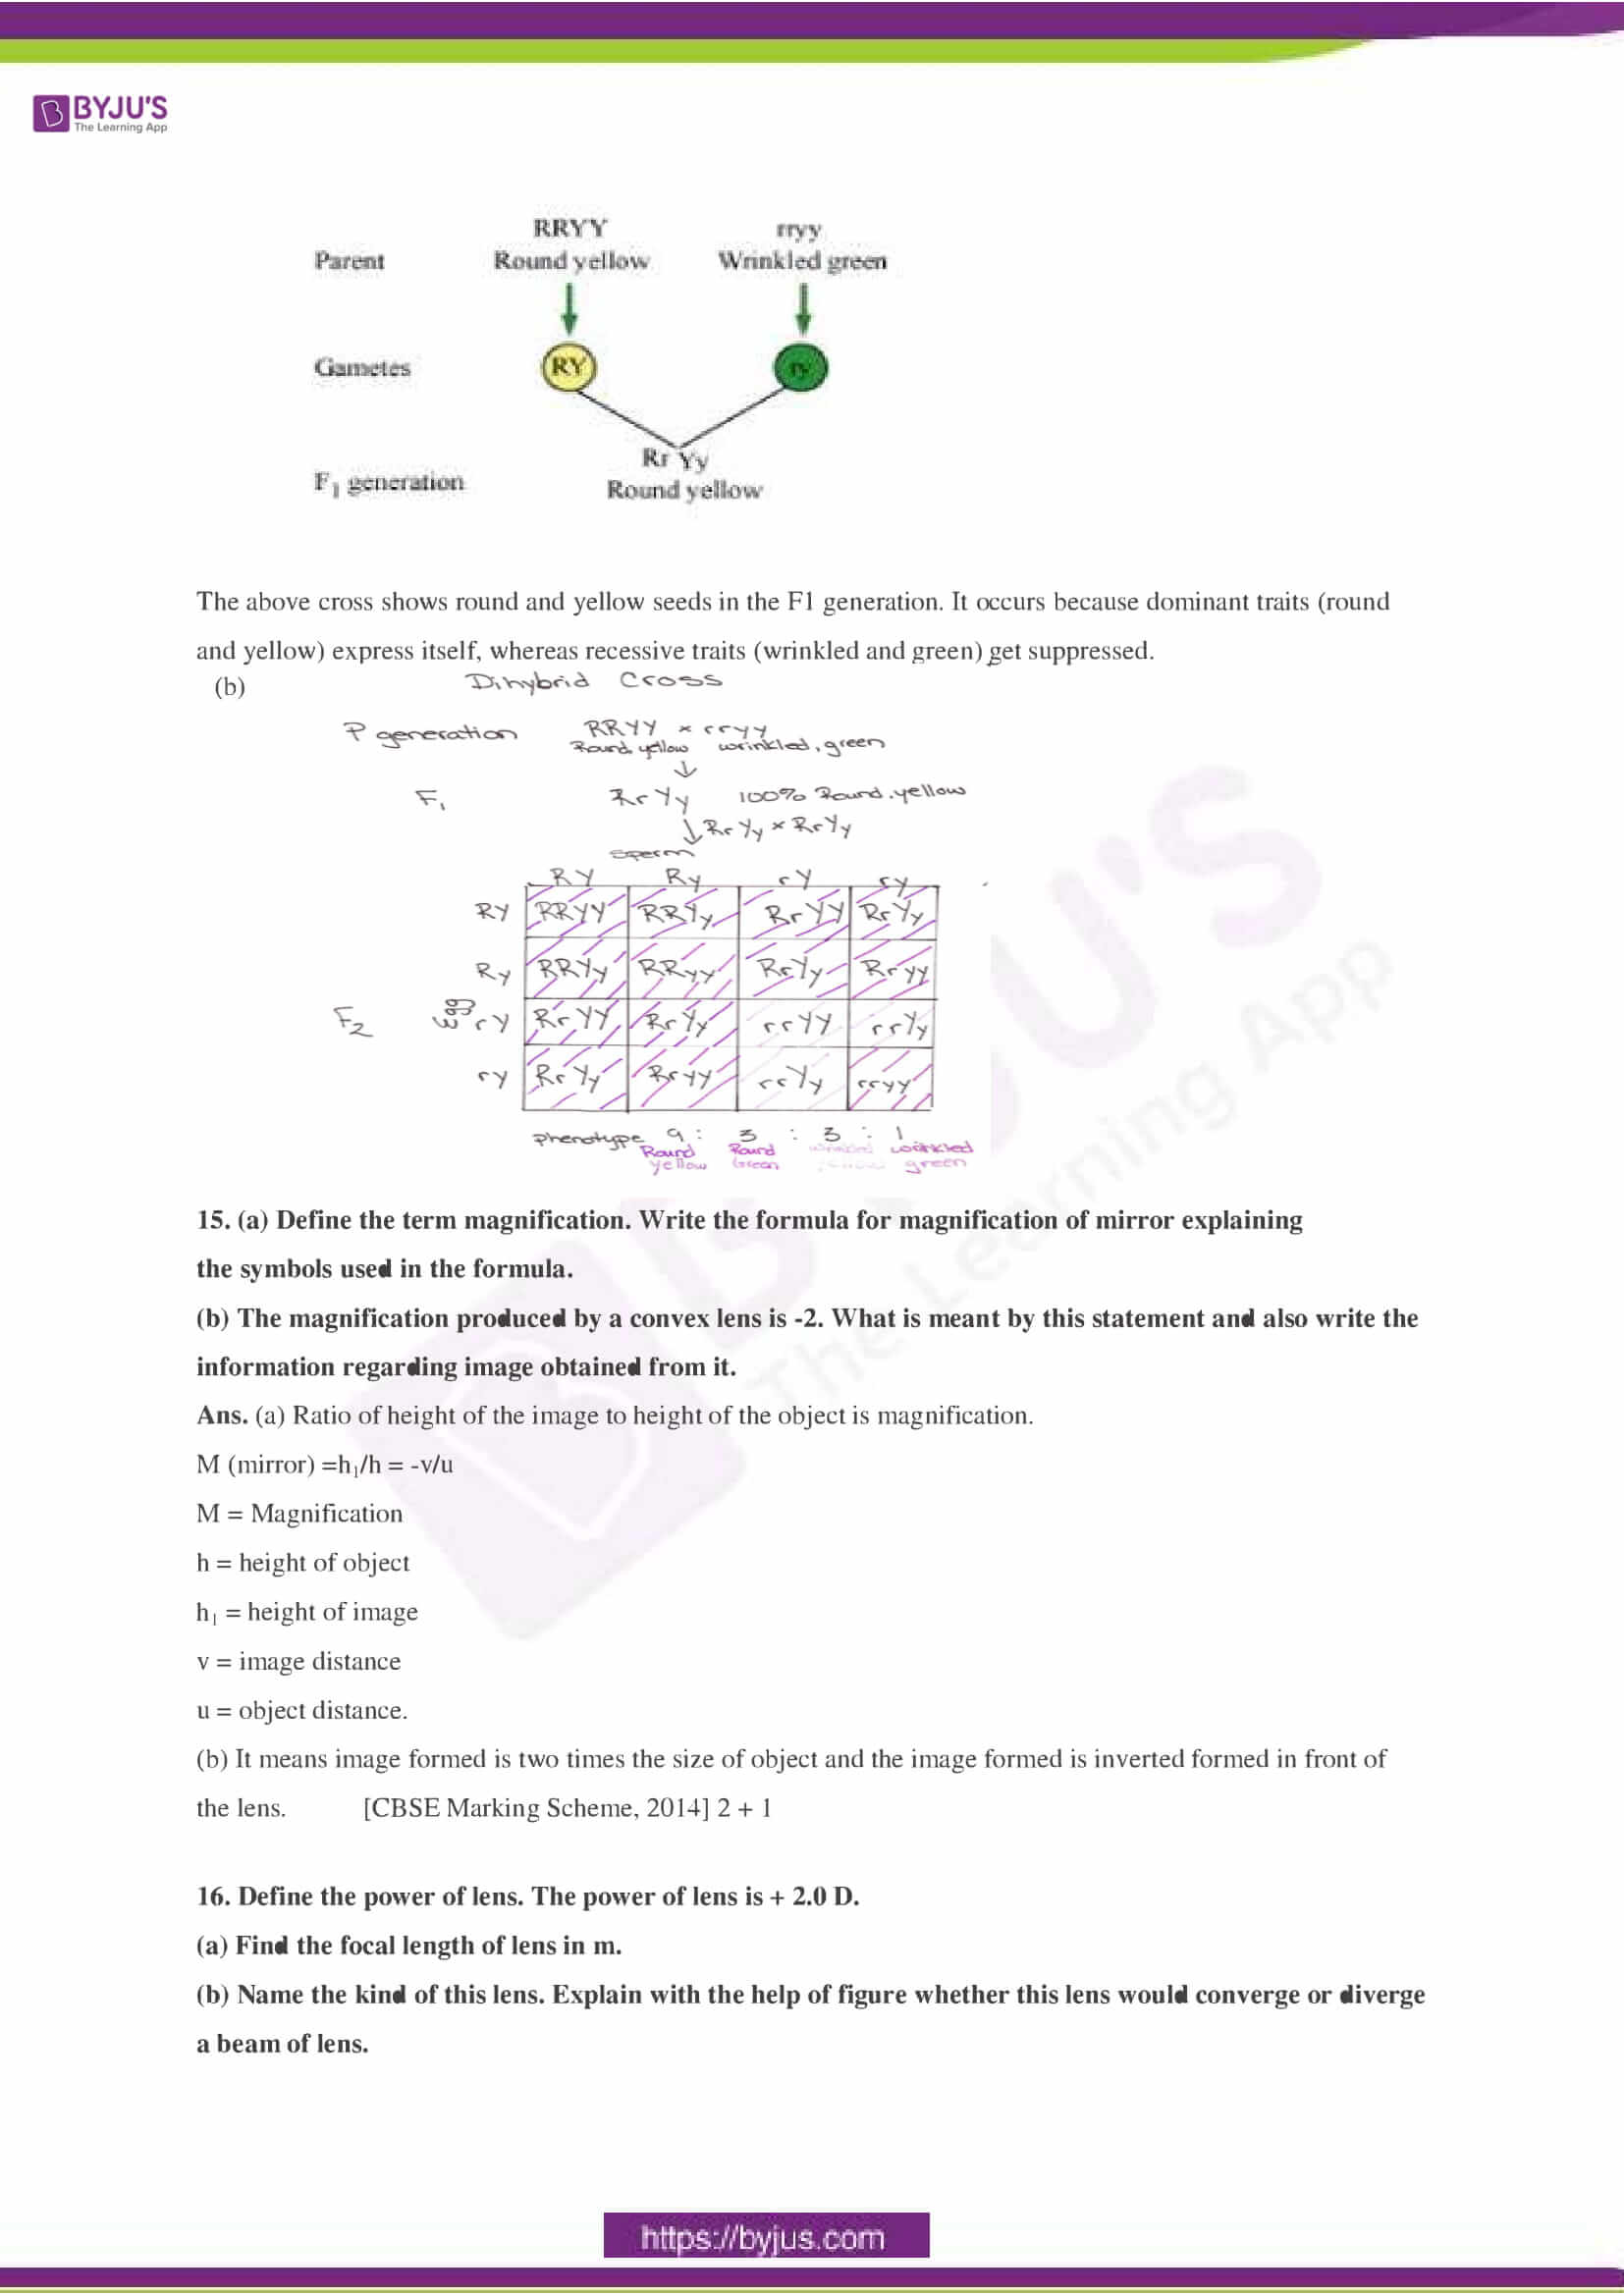 CBSE Class 10 Science Sample Paper Solution Set 2-05